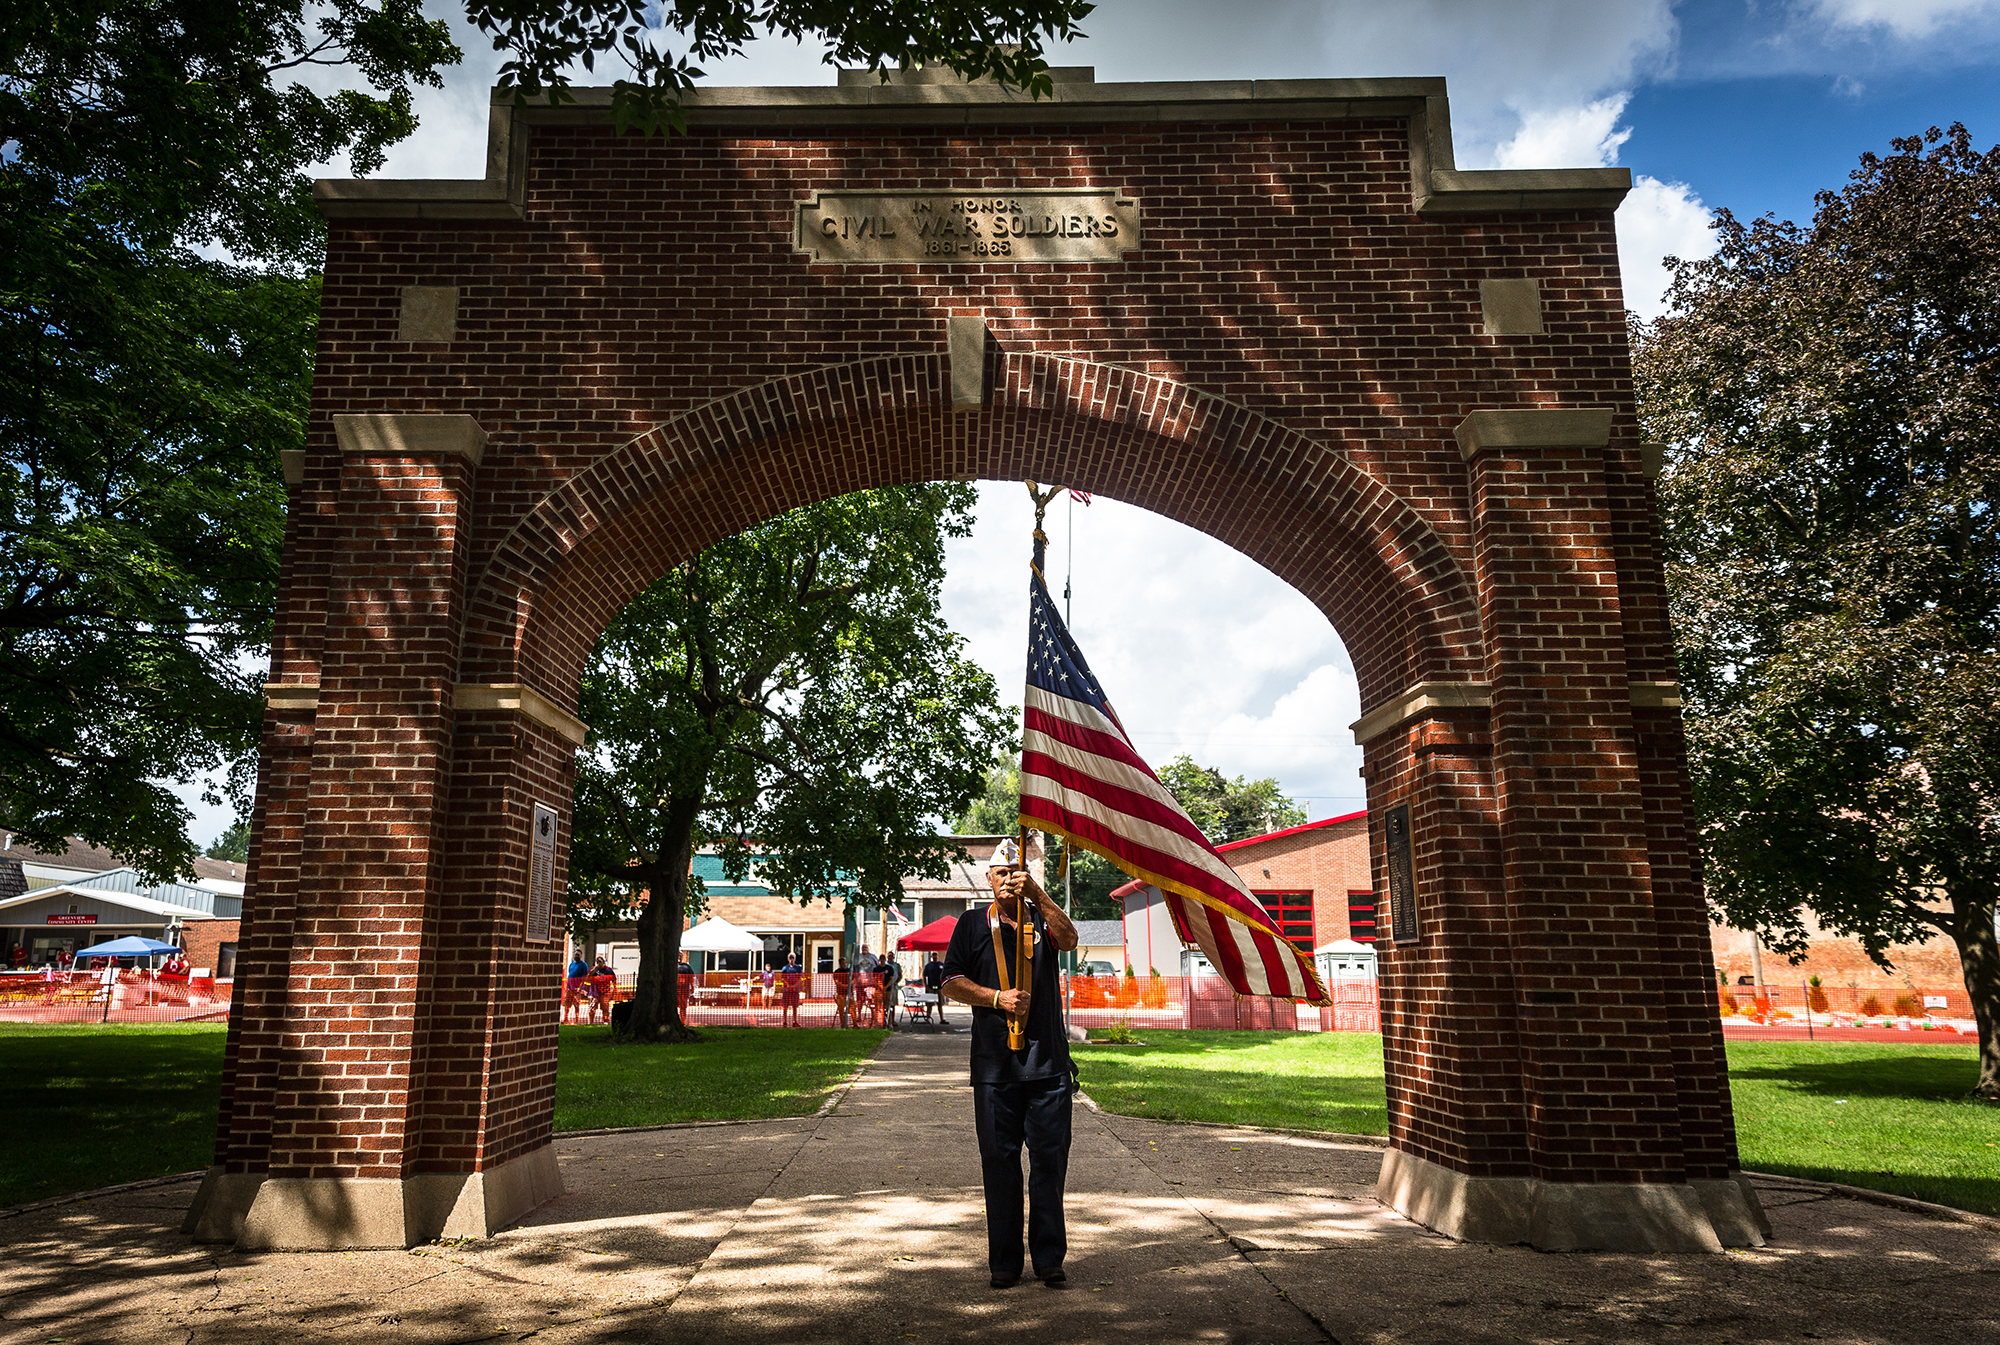 Marine Corps. Veteran Norm Flowers carries the American Flag under the newly refurbished Greenview WWI Monument Arch during a ceremony to rededicate the arch as the Greenview Veterans Memorial during the 50th Greenview Labor Day Celebration in Greenview Community Park, Sunday, Sept. 2, 2018, in Greenview, Ill. The arch was originally built in 1920 and had to have 500 bricks replaced in the restoration process that was paid for by donations from the community and a grant from Landmarks Illinois' World War I Monument Preservation Grant program. [Justin L. Fowler/The State Journal-Register]